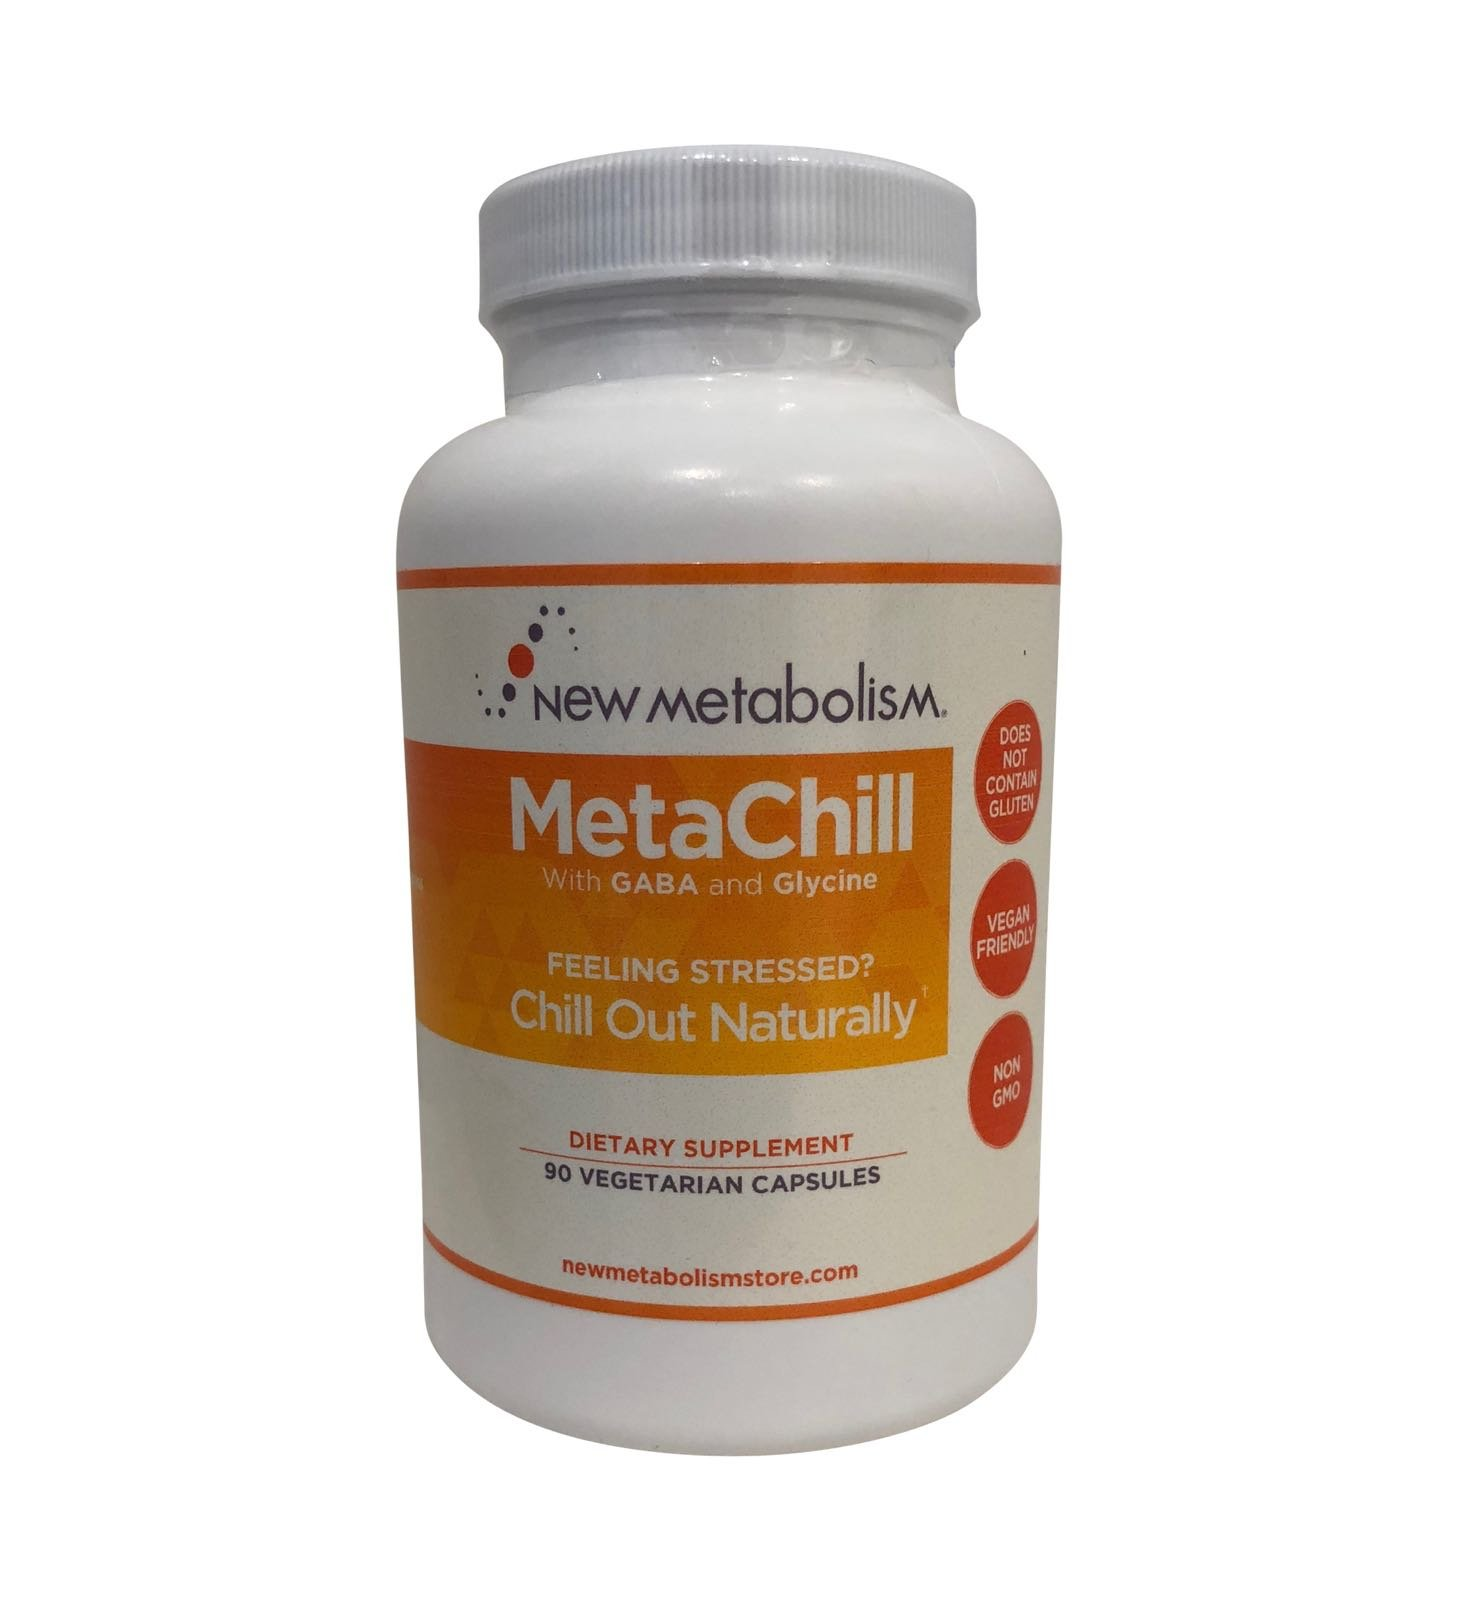 MetaChill by Celebrity Nutritionist Derek Johnson   A Synergistic GABA Formula Being Called Nature's Xanax   Reduce Stress, Anxiety Relief, Mood Enhancer   Keep Calm And Take A Chill Pill